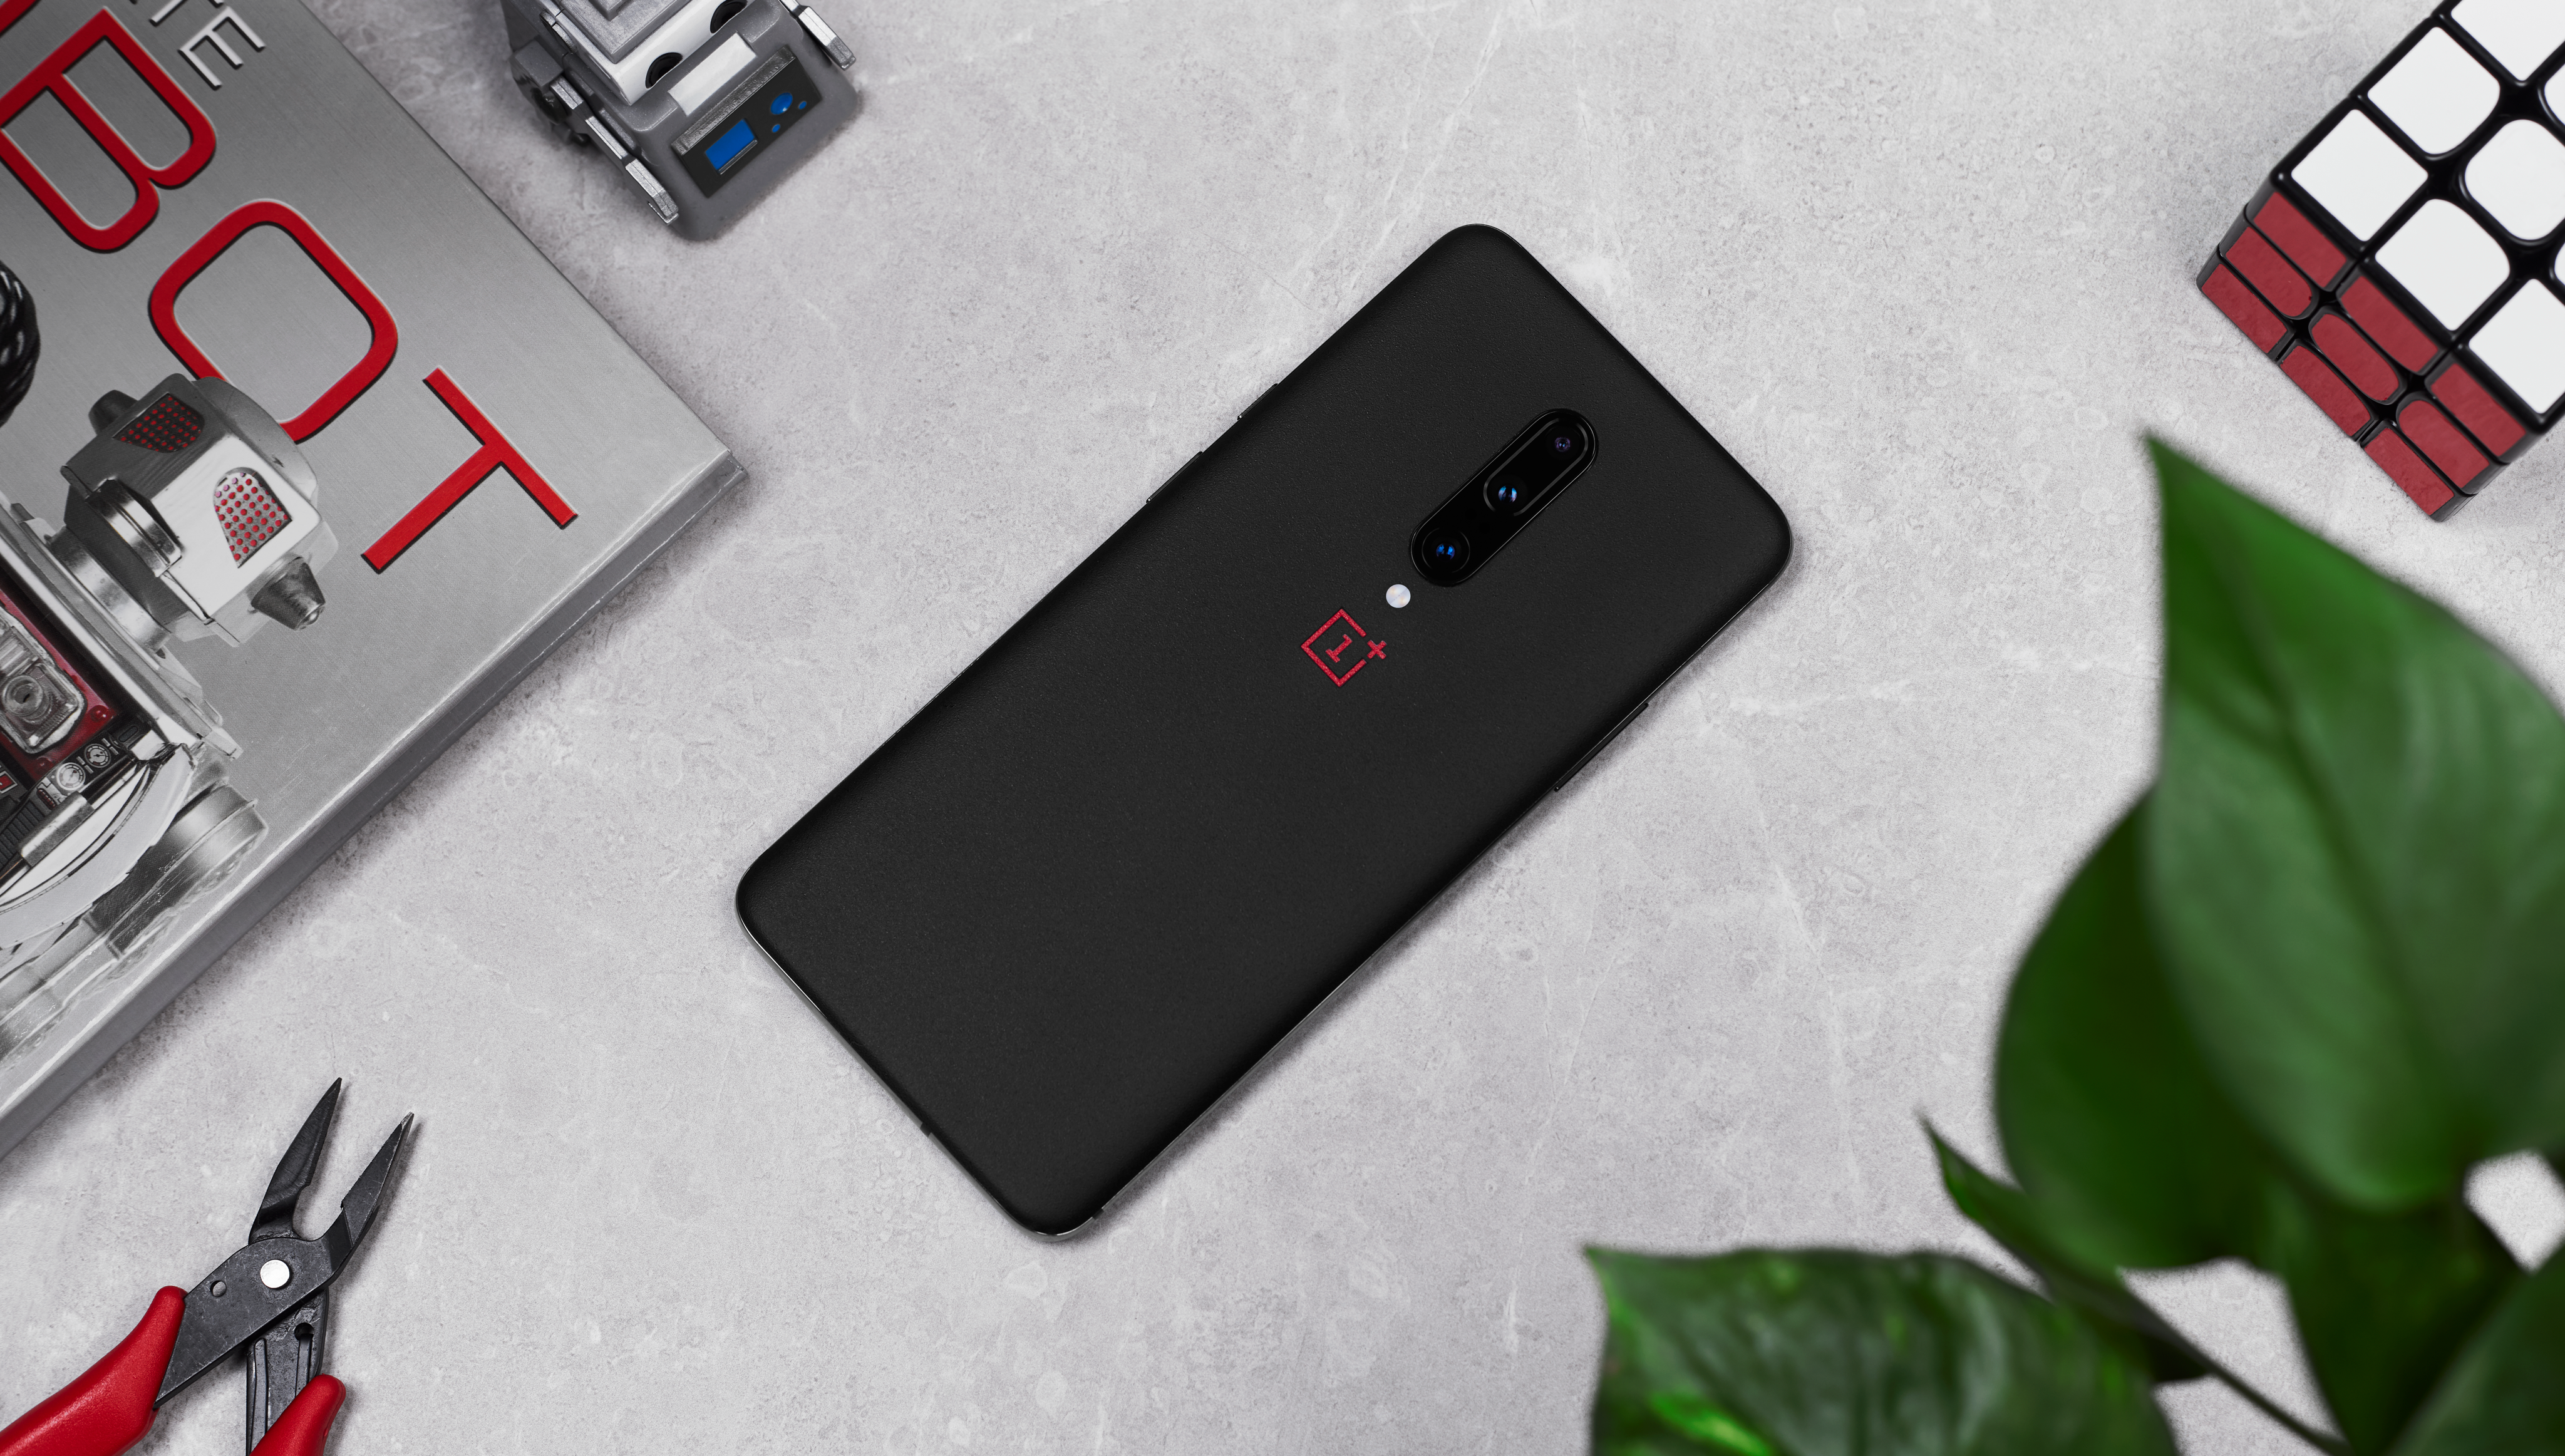 Best Oneplus 7 Case Protect Your Oneplus 7 Pro From Day 1 9to5google